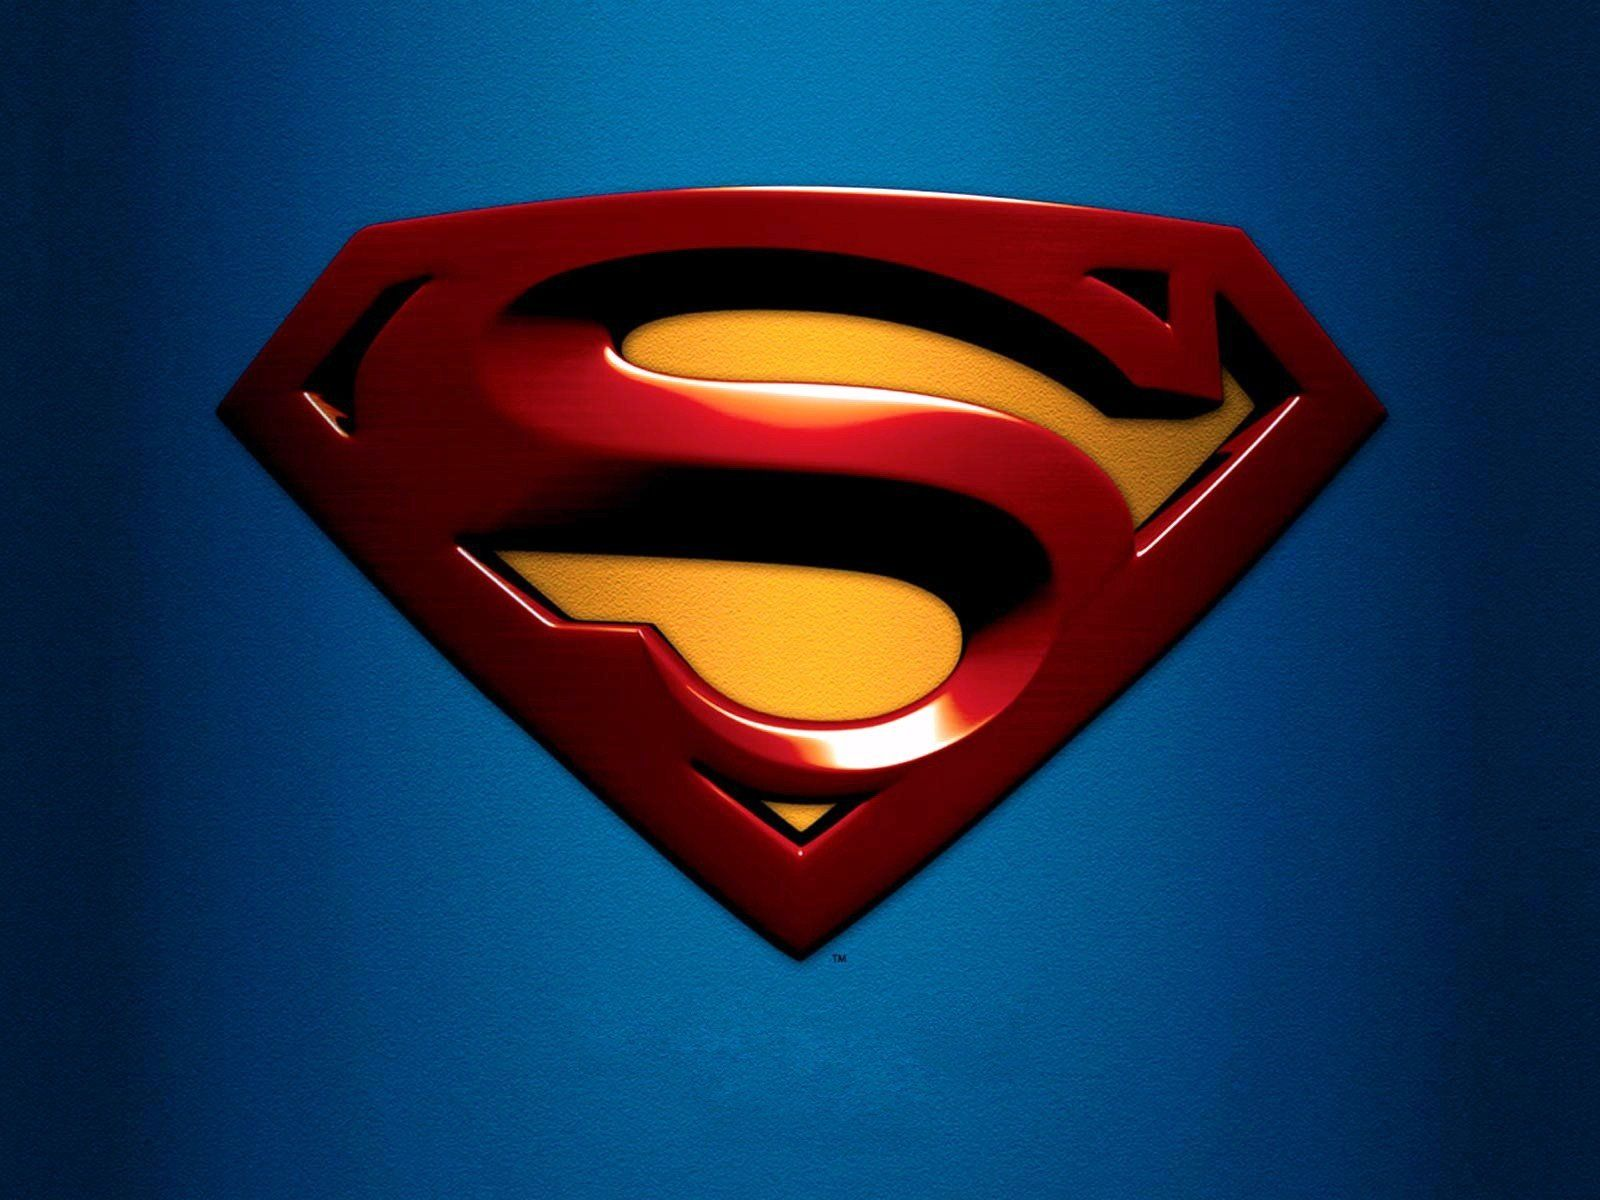 501 Superman Hd Wallpapers And Background Images Download For